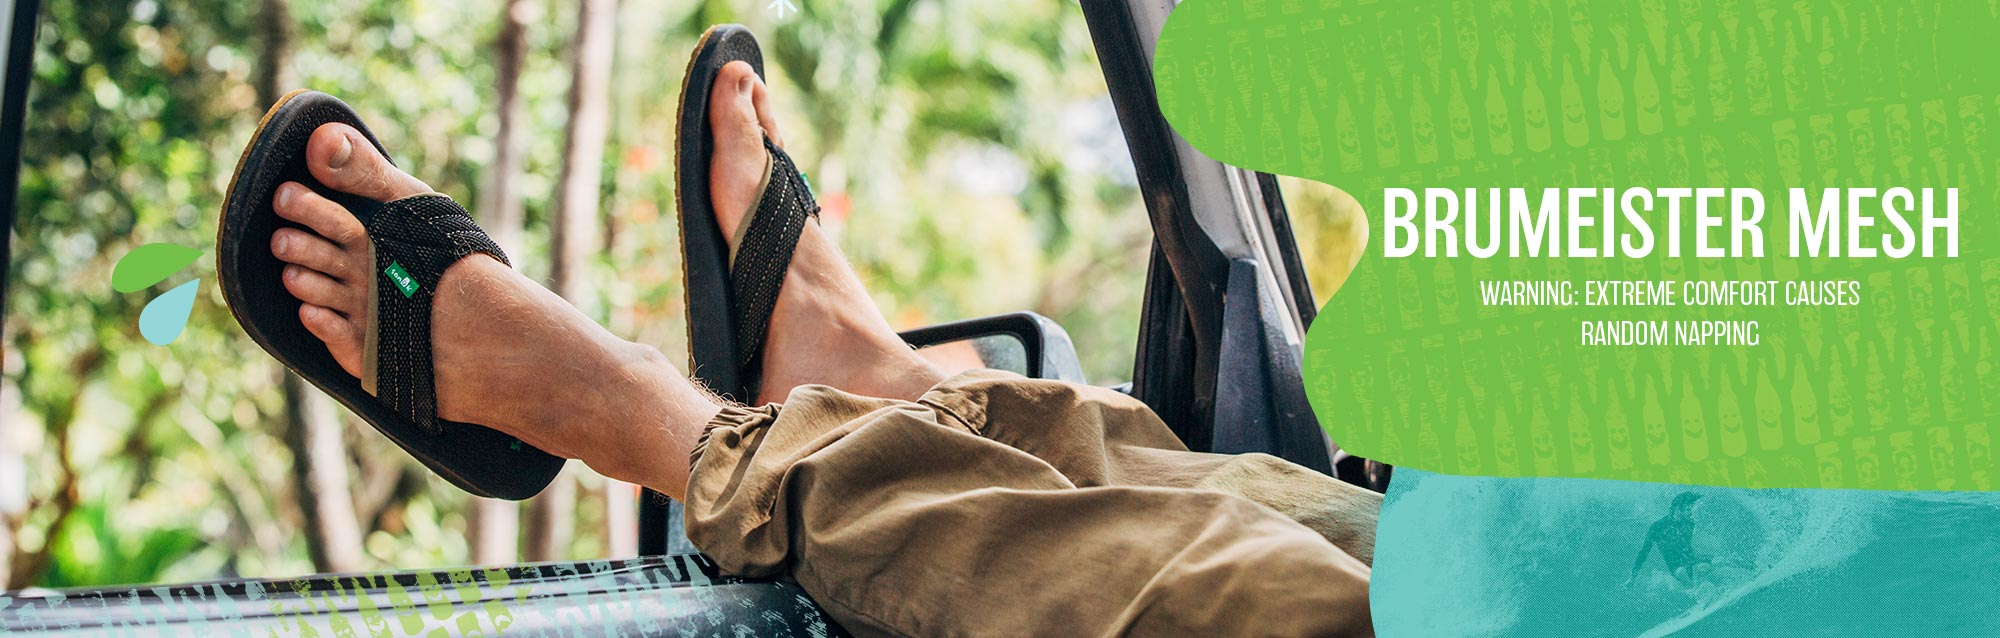 Man wearing Sanuk Brumeister mesh sandals with his feet hanging out of car window.